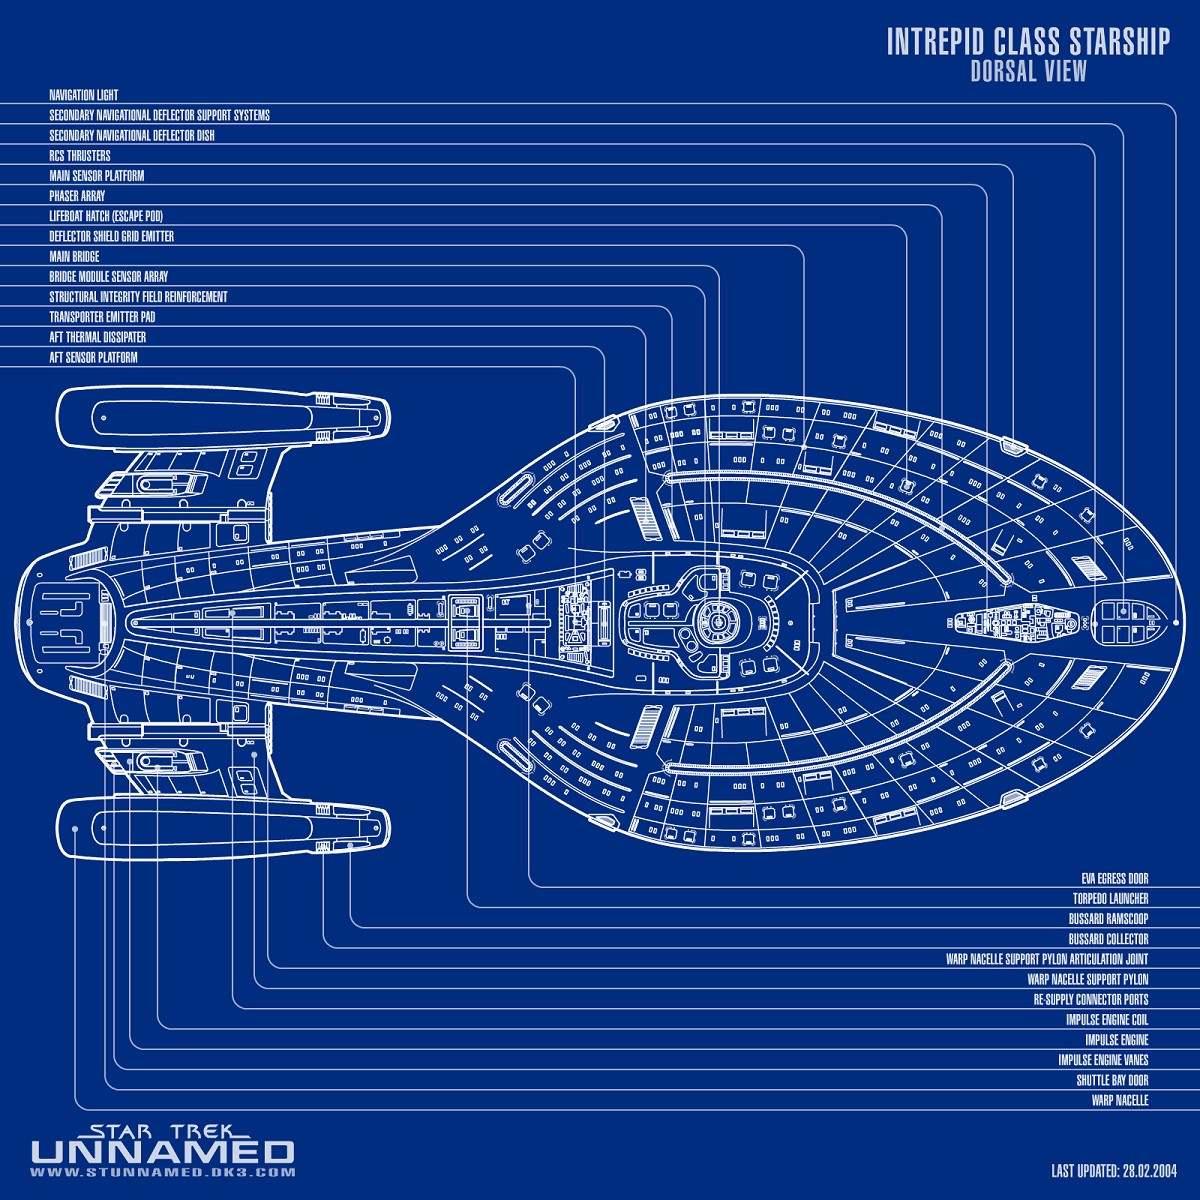 Intrepid Class Starship Schematic Dorsal View By Napalmking 2d Spaceship Engine Diagram